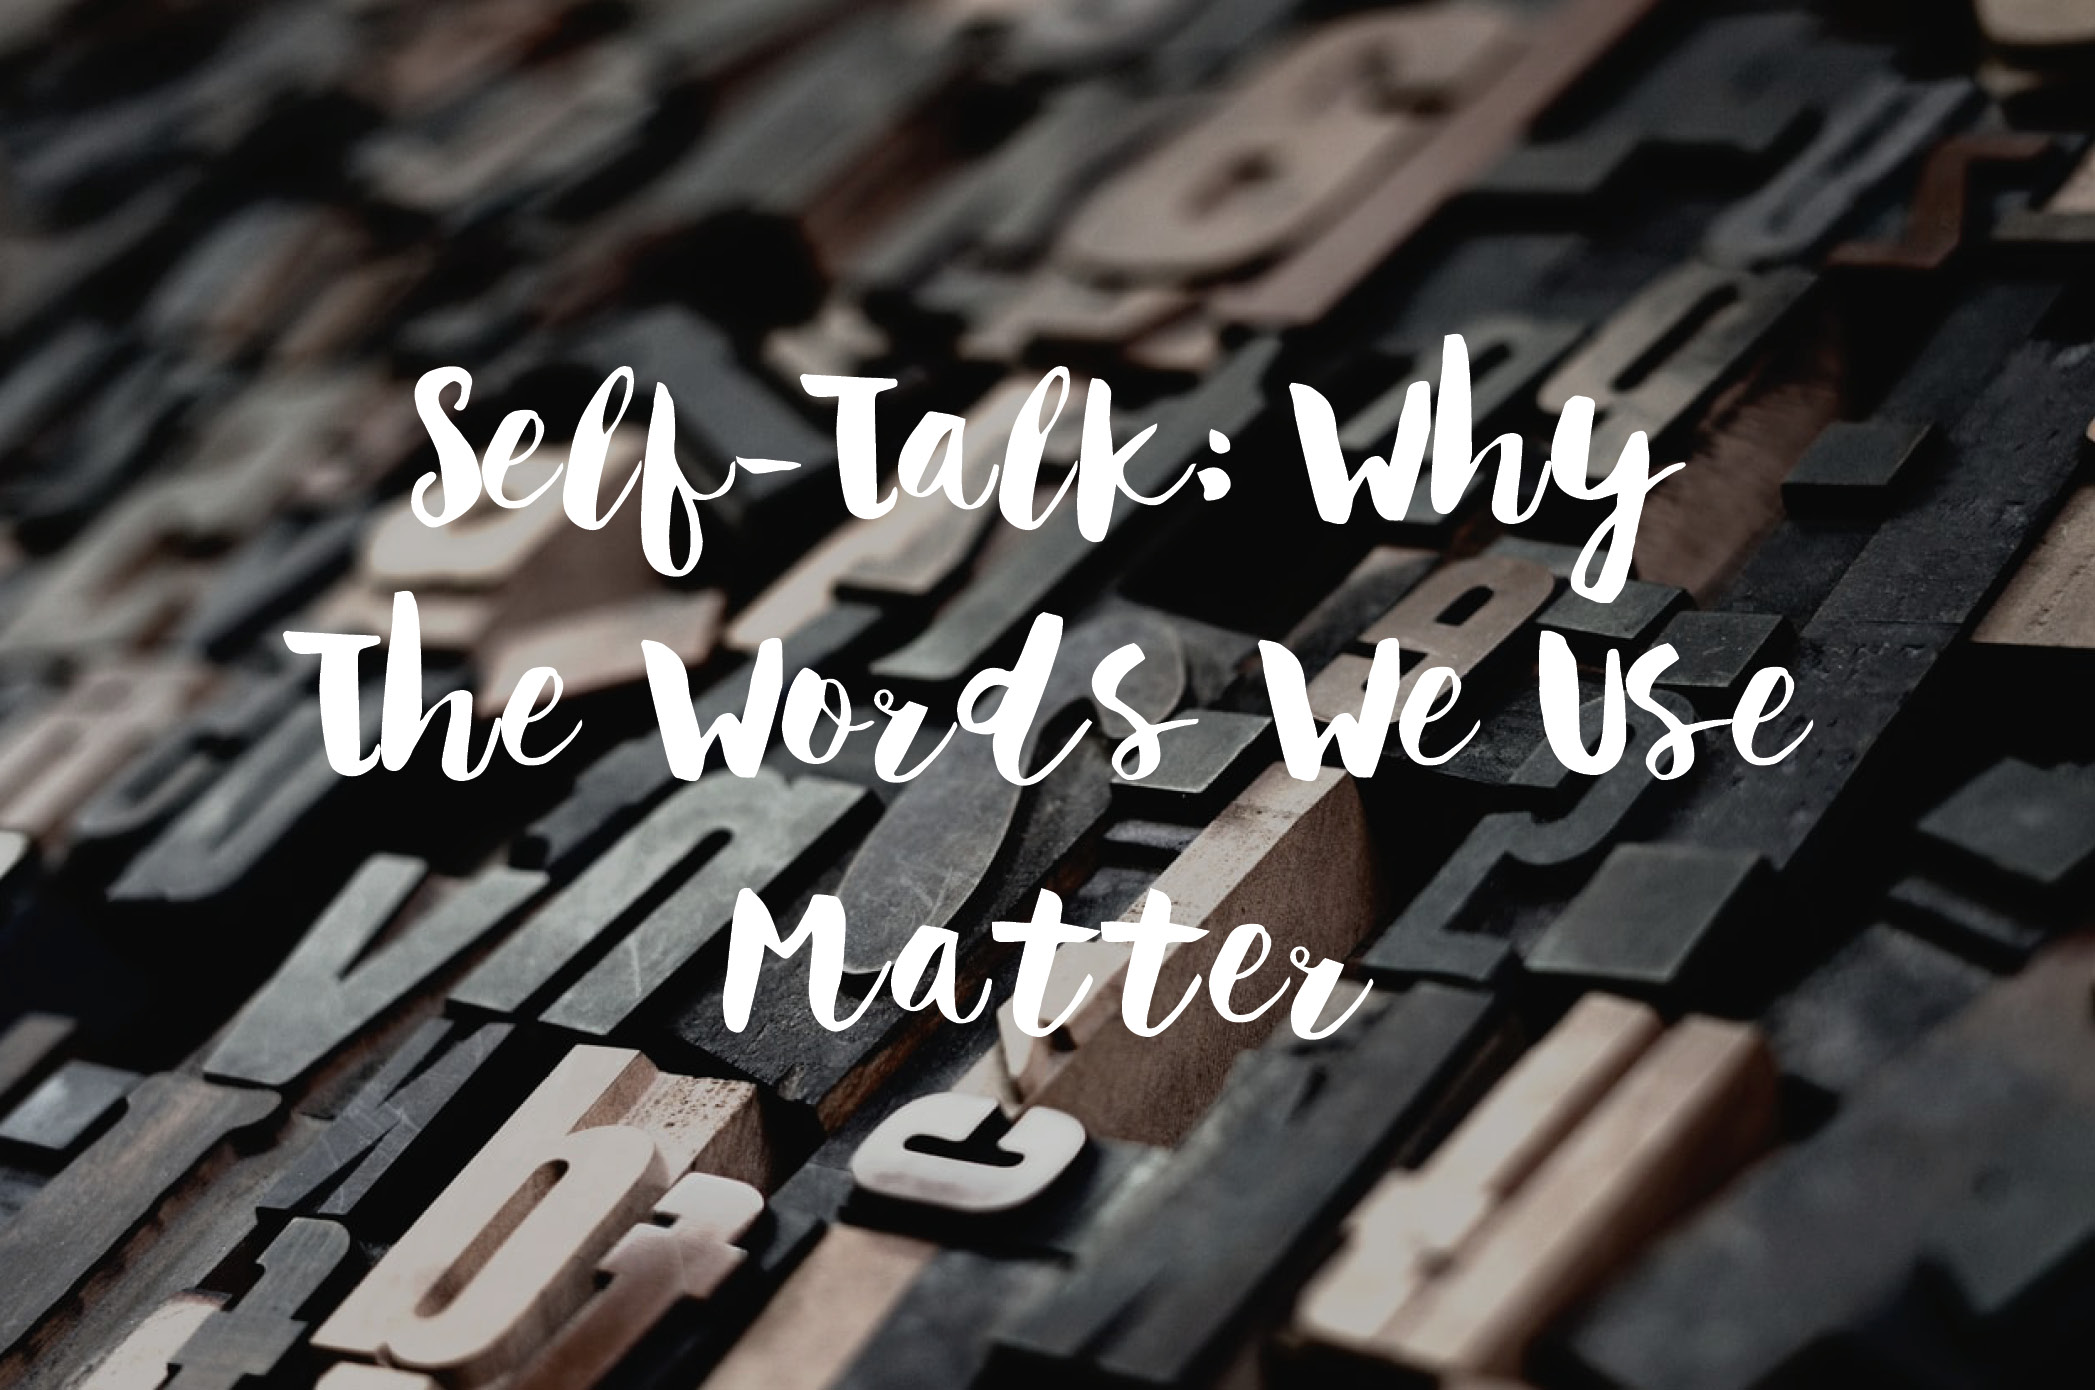 Self-Talk: Why The Words We Use Matter